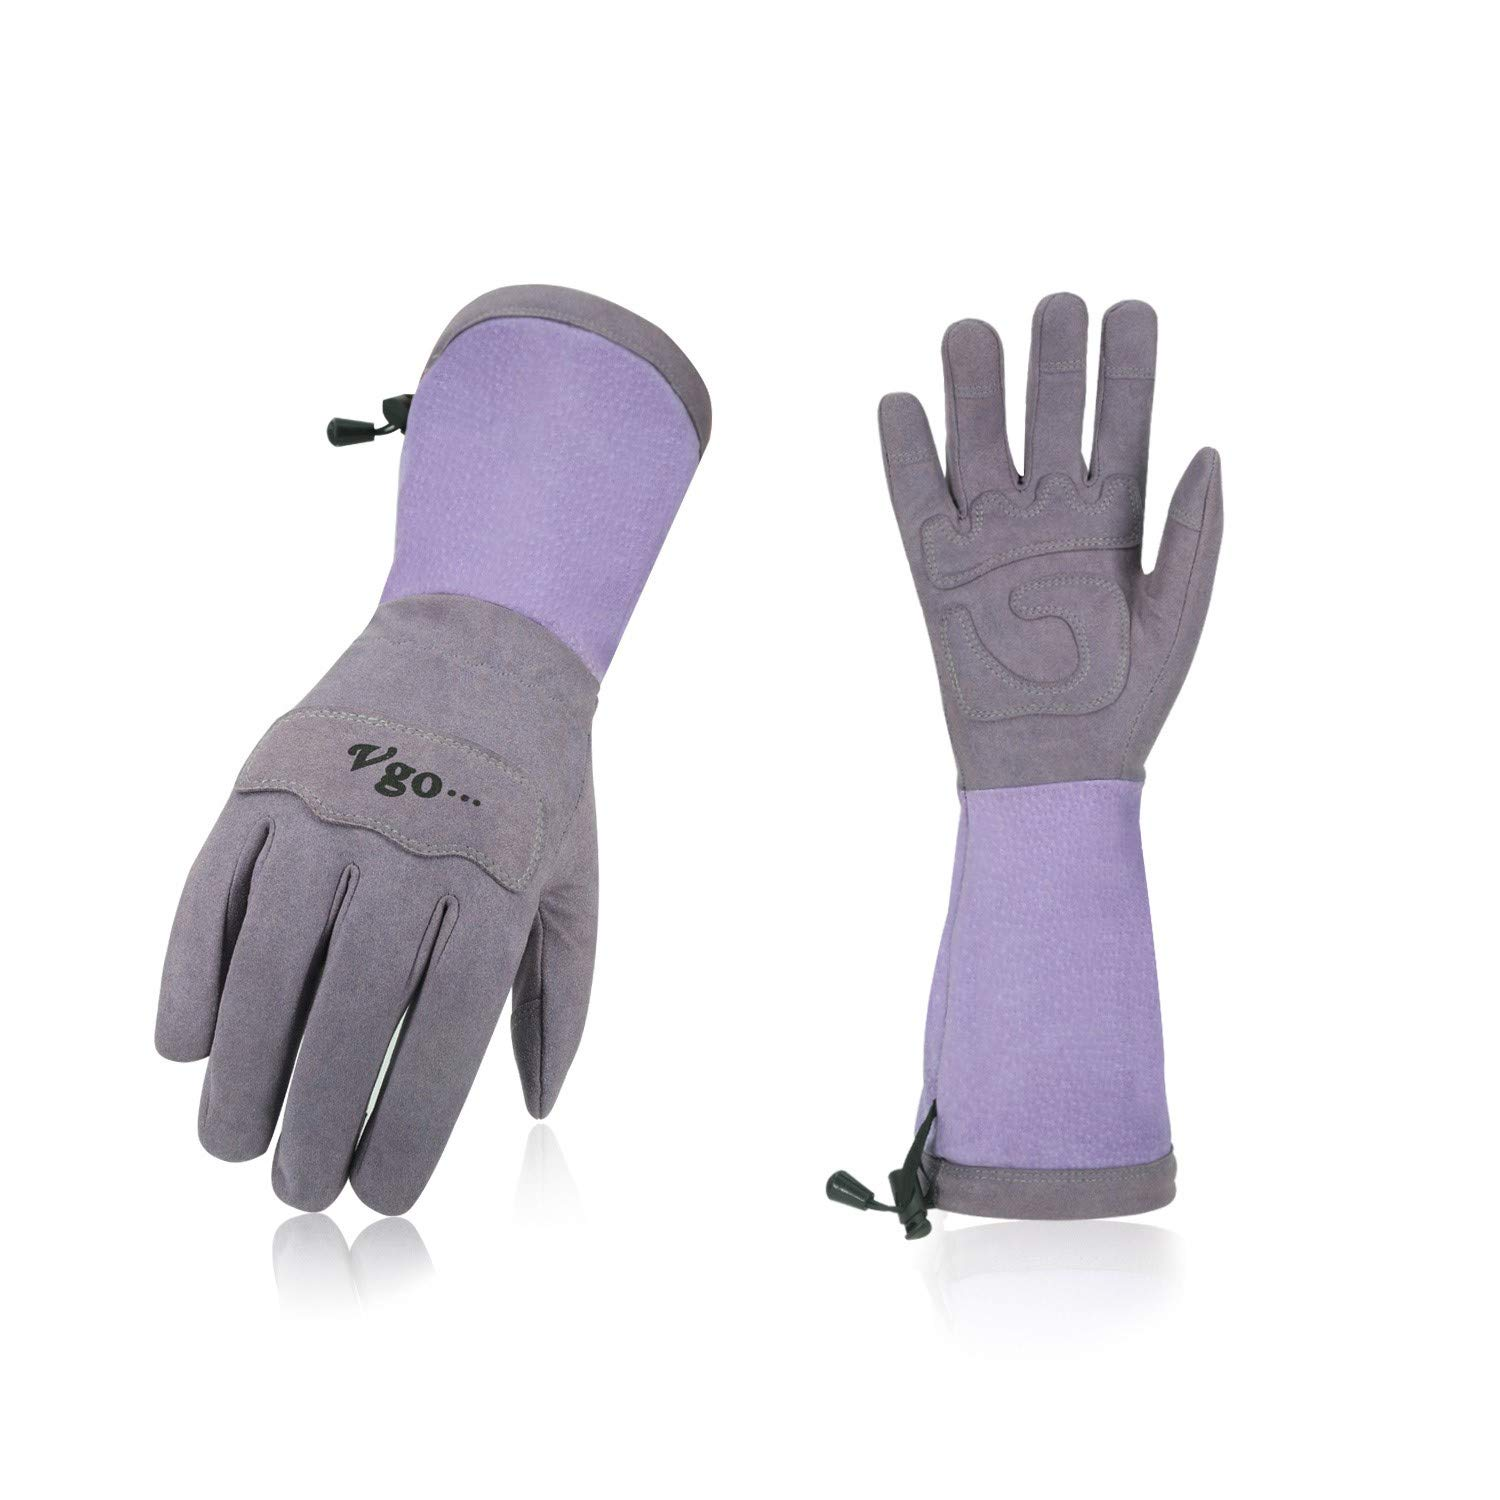 Vgo Ladies' Synthetic Leather Palm with Long Pig Split Leather Cuff Rose Garden Gloves (1Pair,Size M,Purple,SL6592W)